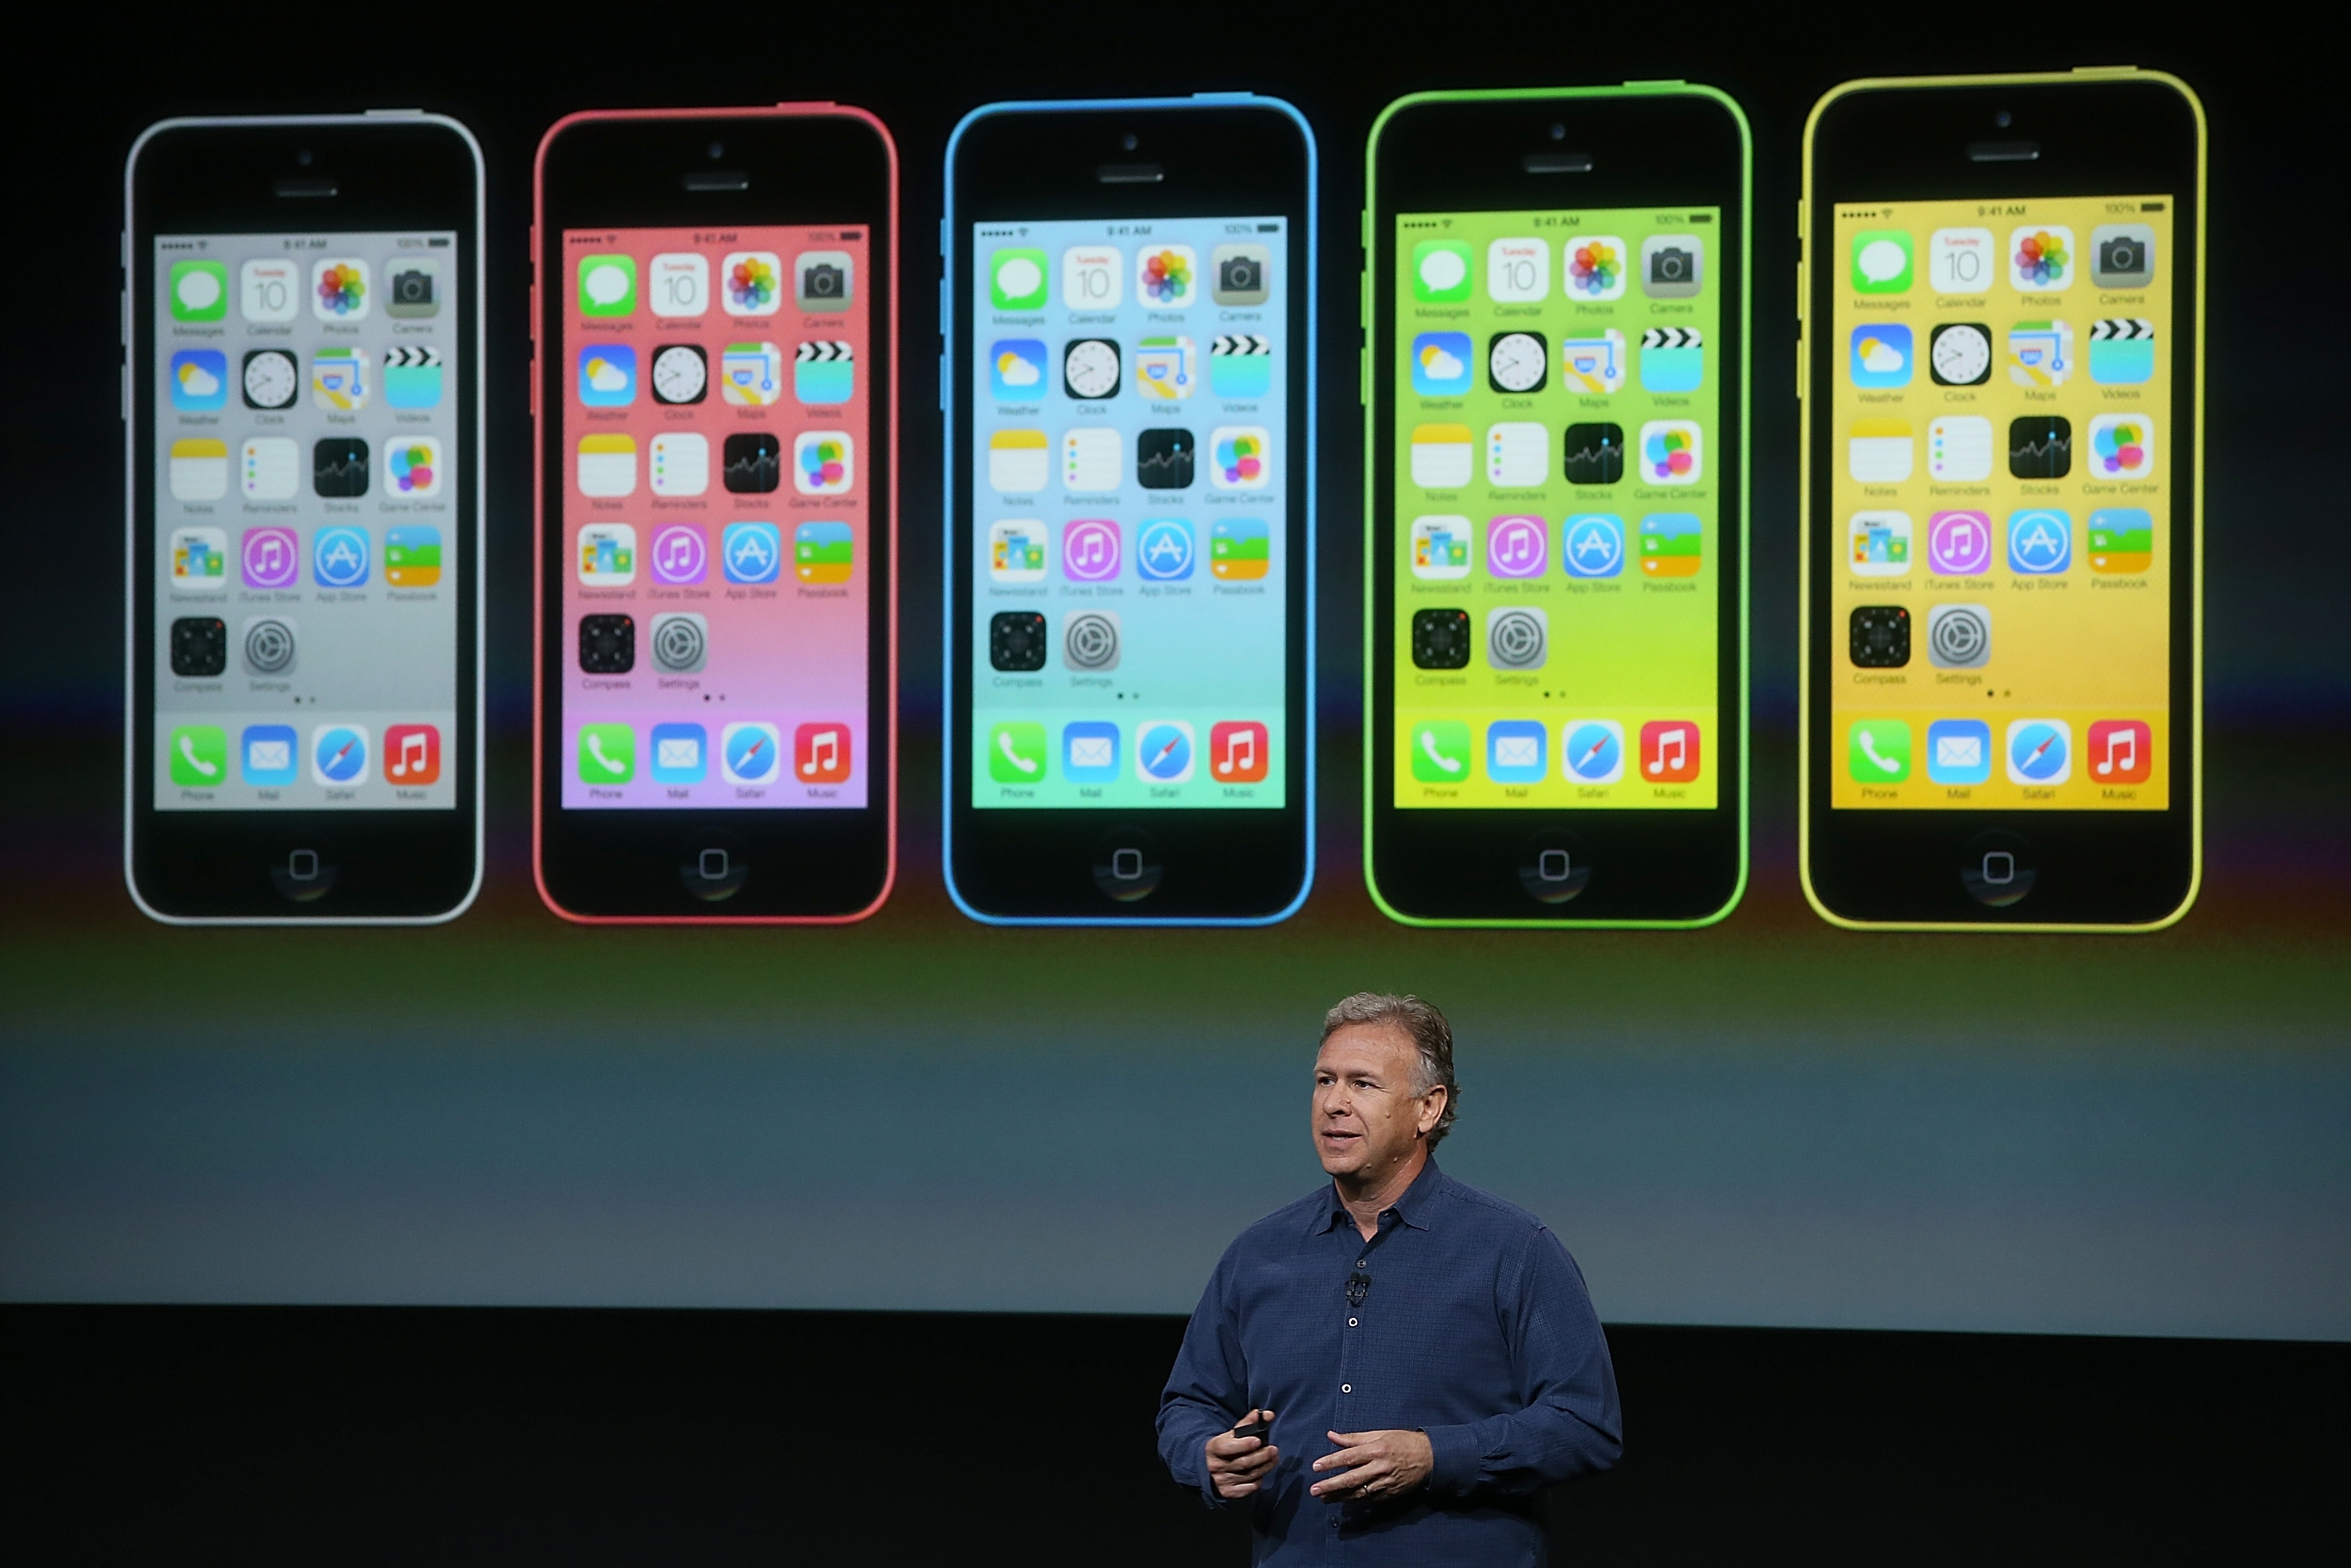 Apple Senior Vice President of Worldwide Marketing Phil Schiller speaks about the new iPhone 5C during an Apple product announcement today. The company launched the new iPhone 5C model that will run iOS 7 is made from hard-coated polycarbonate and comes in various colors.